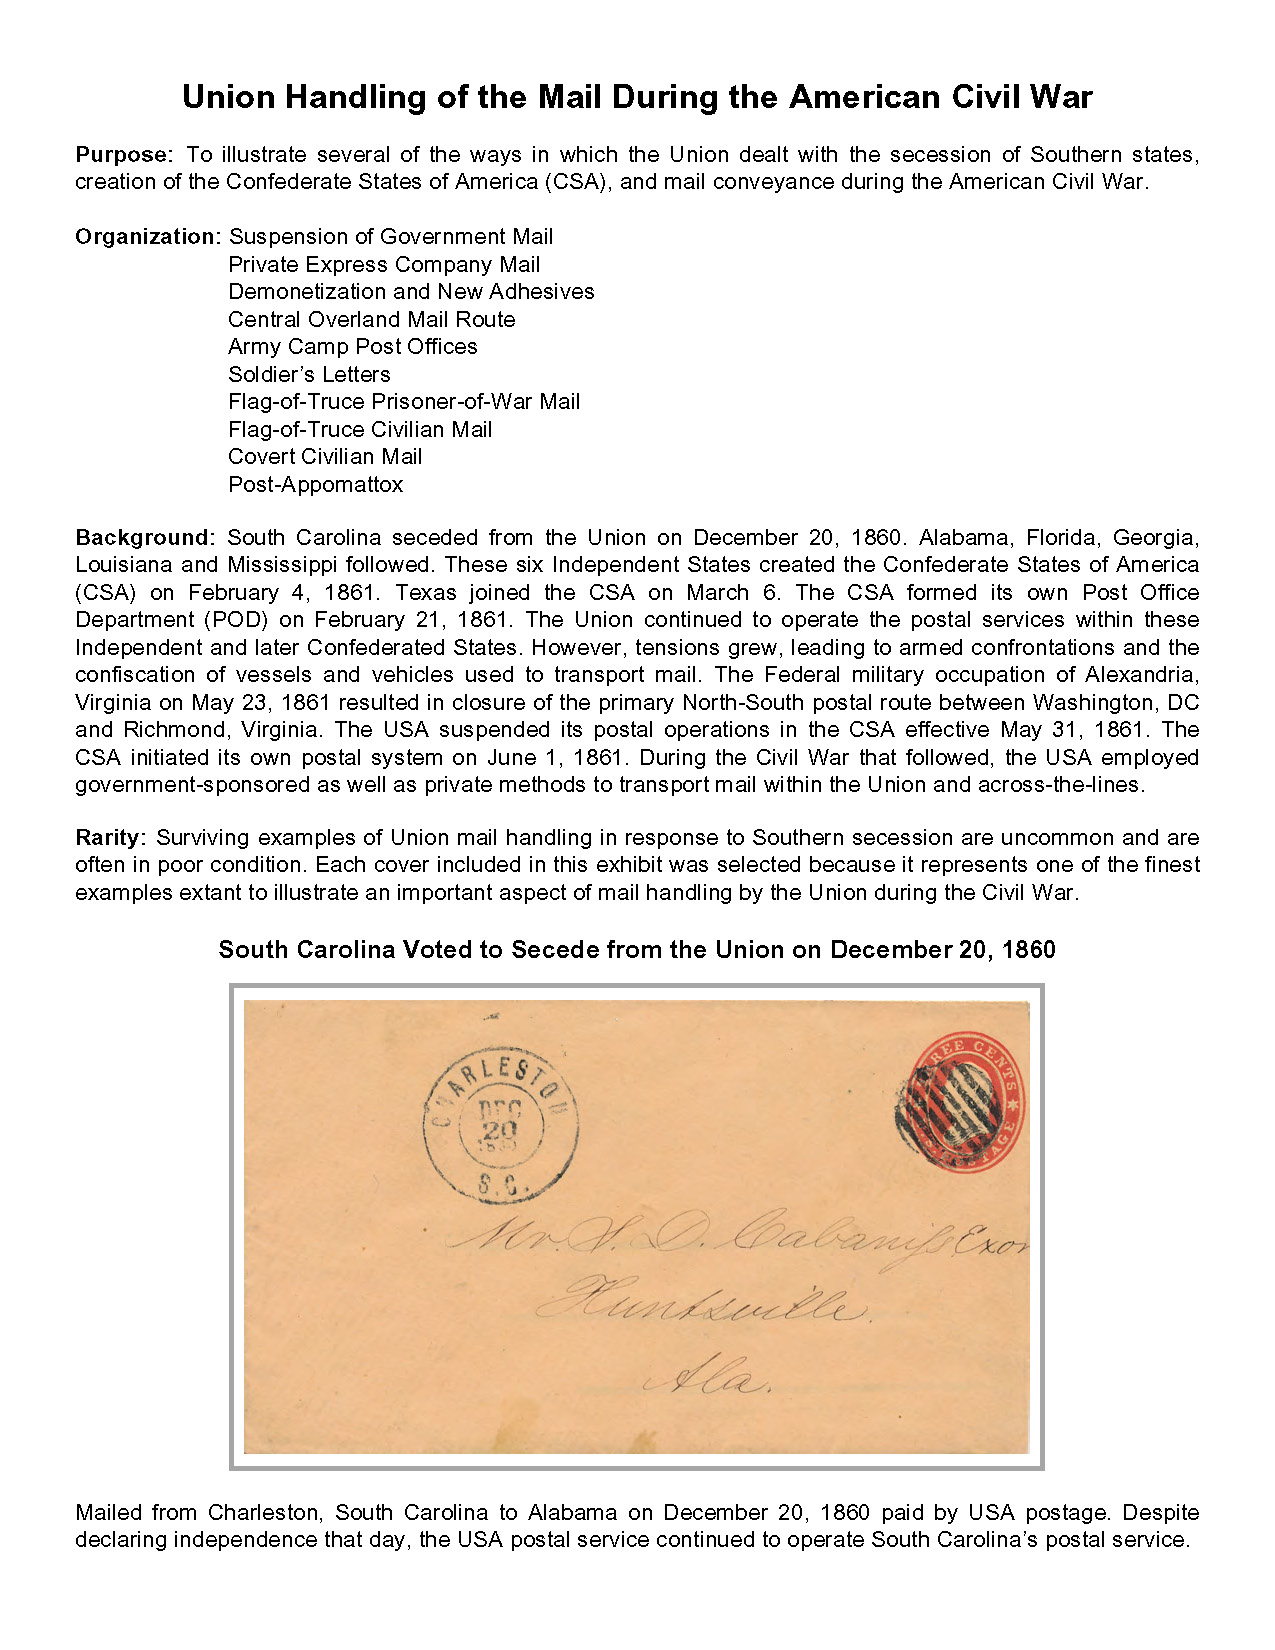 Suspension letter mailed